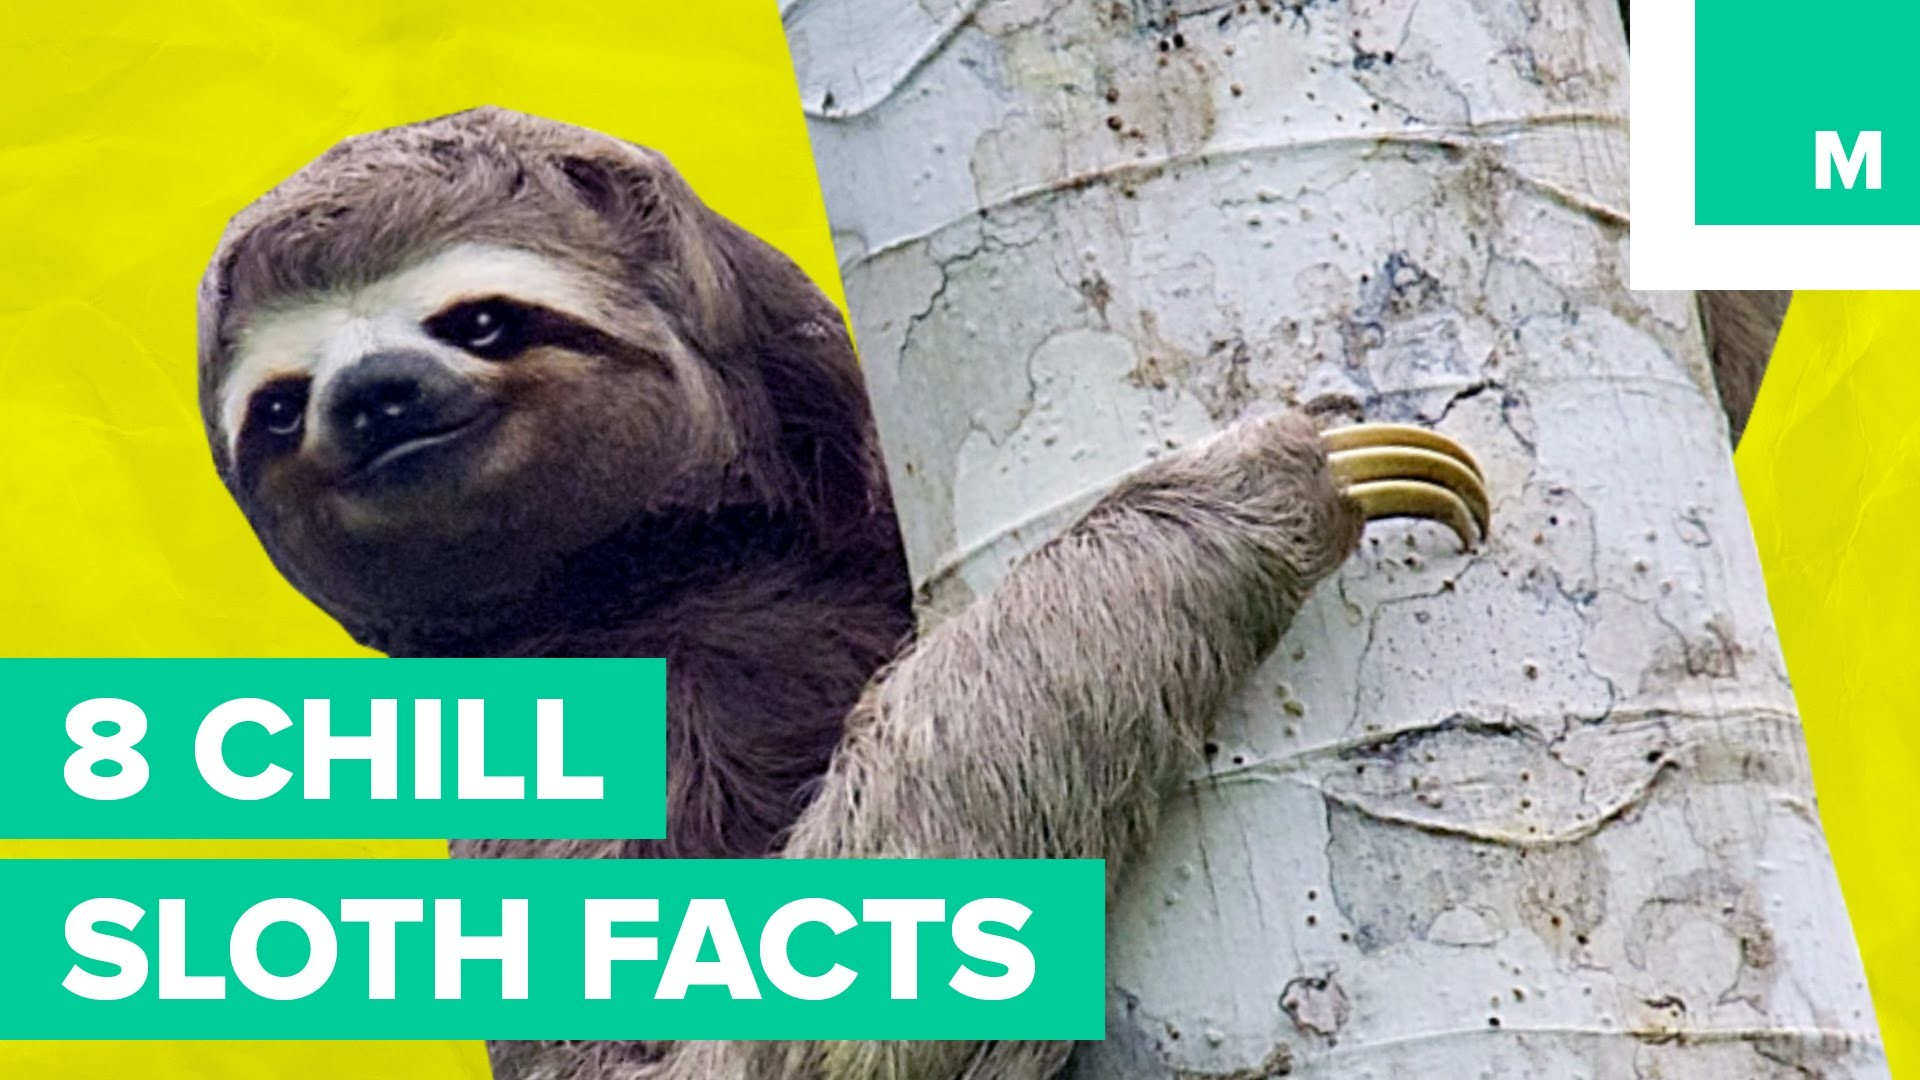 8 Chill Sloth Facts | Fuzzy Friday